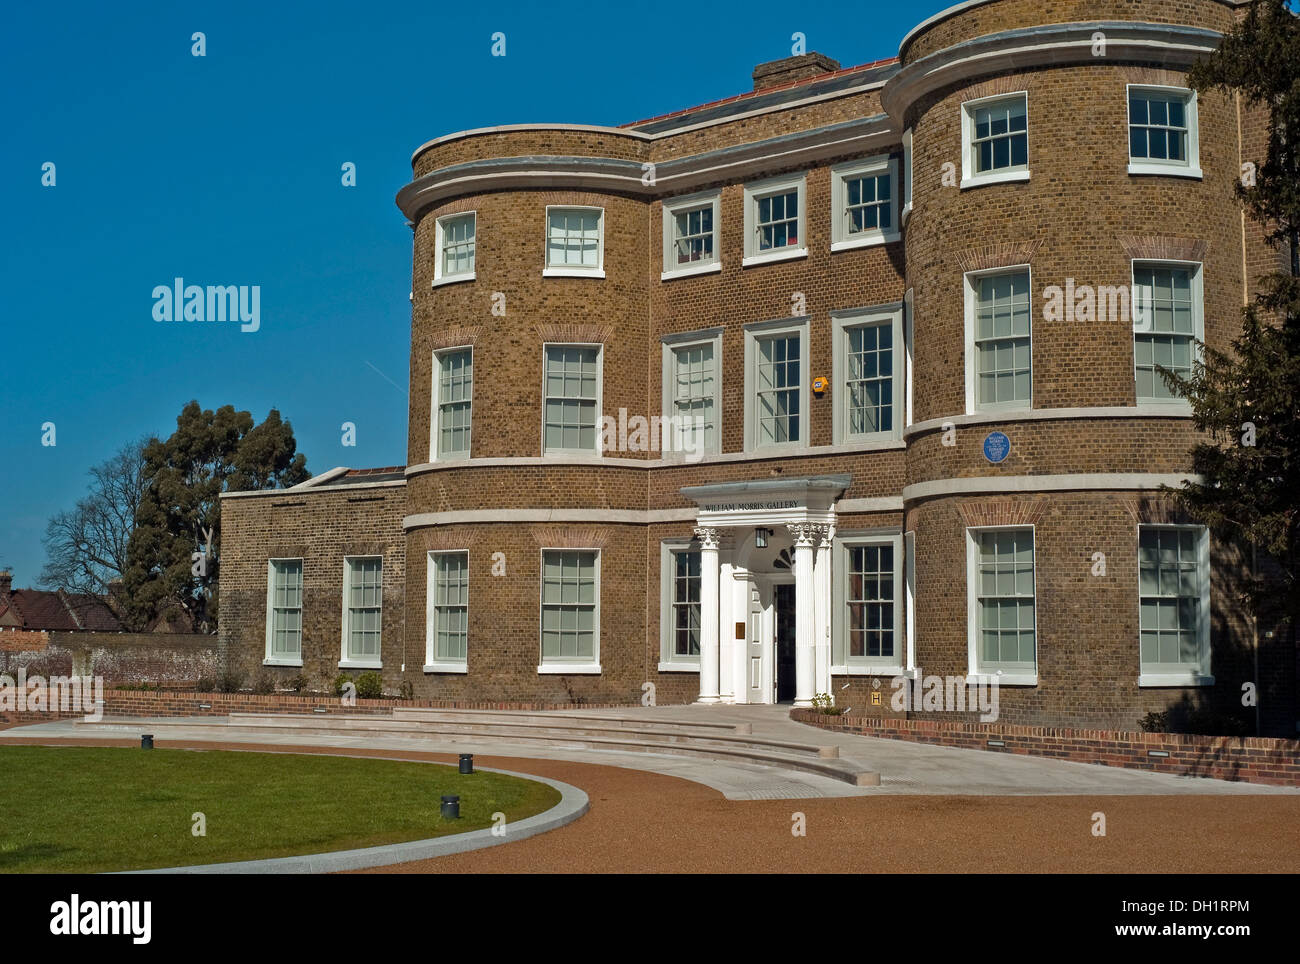 The William Morris Gallery, grade II* listed building Lloyd Park in Walthamstow, in north-east London. - Stock Image